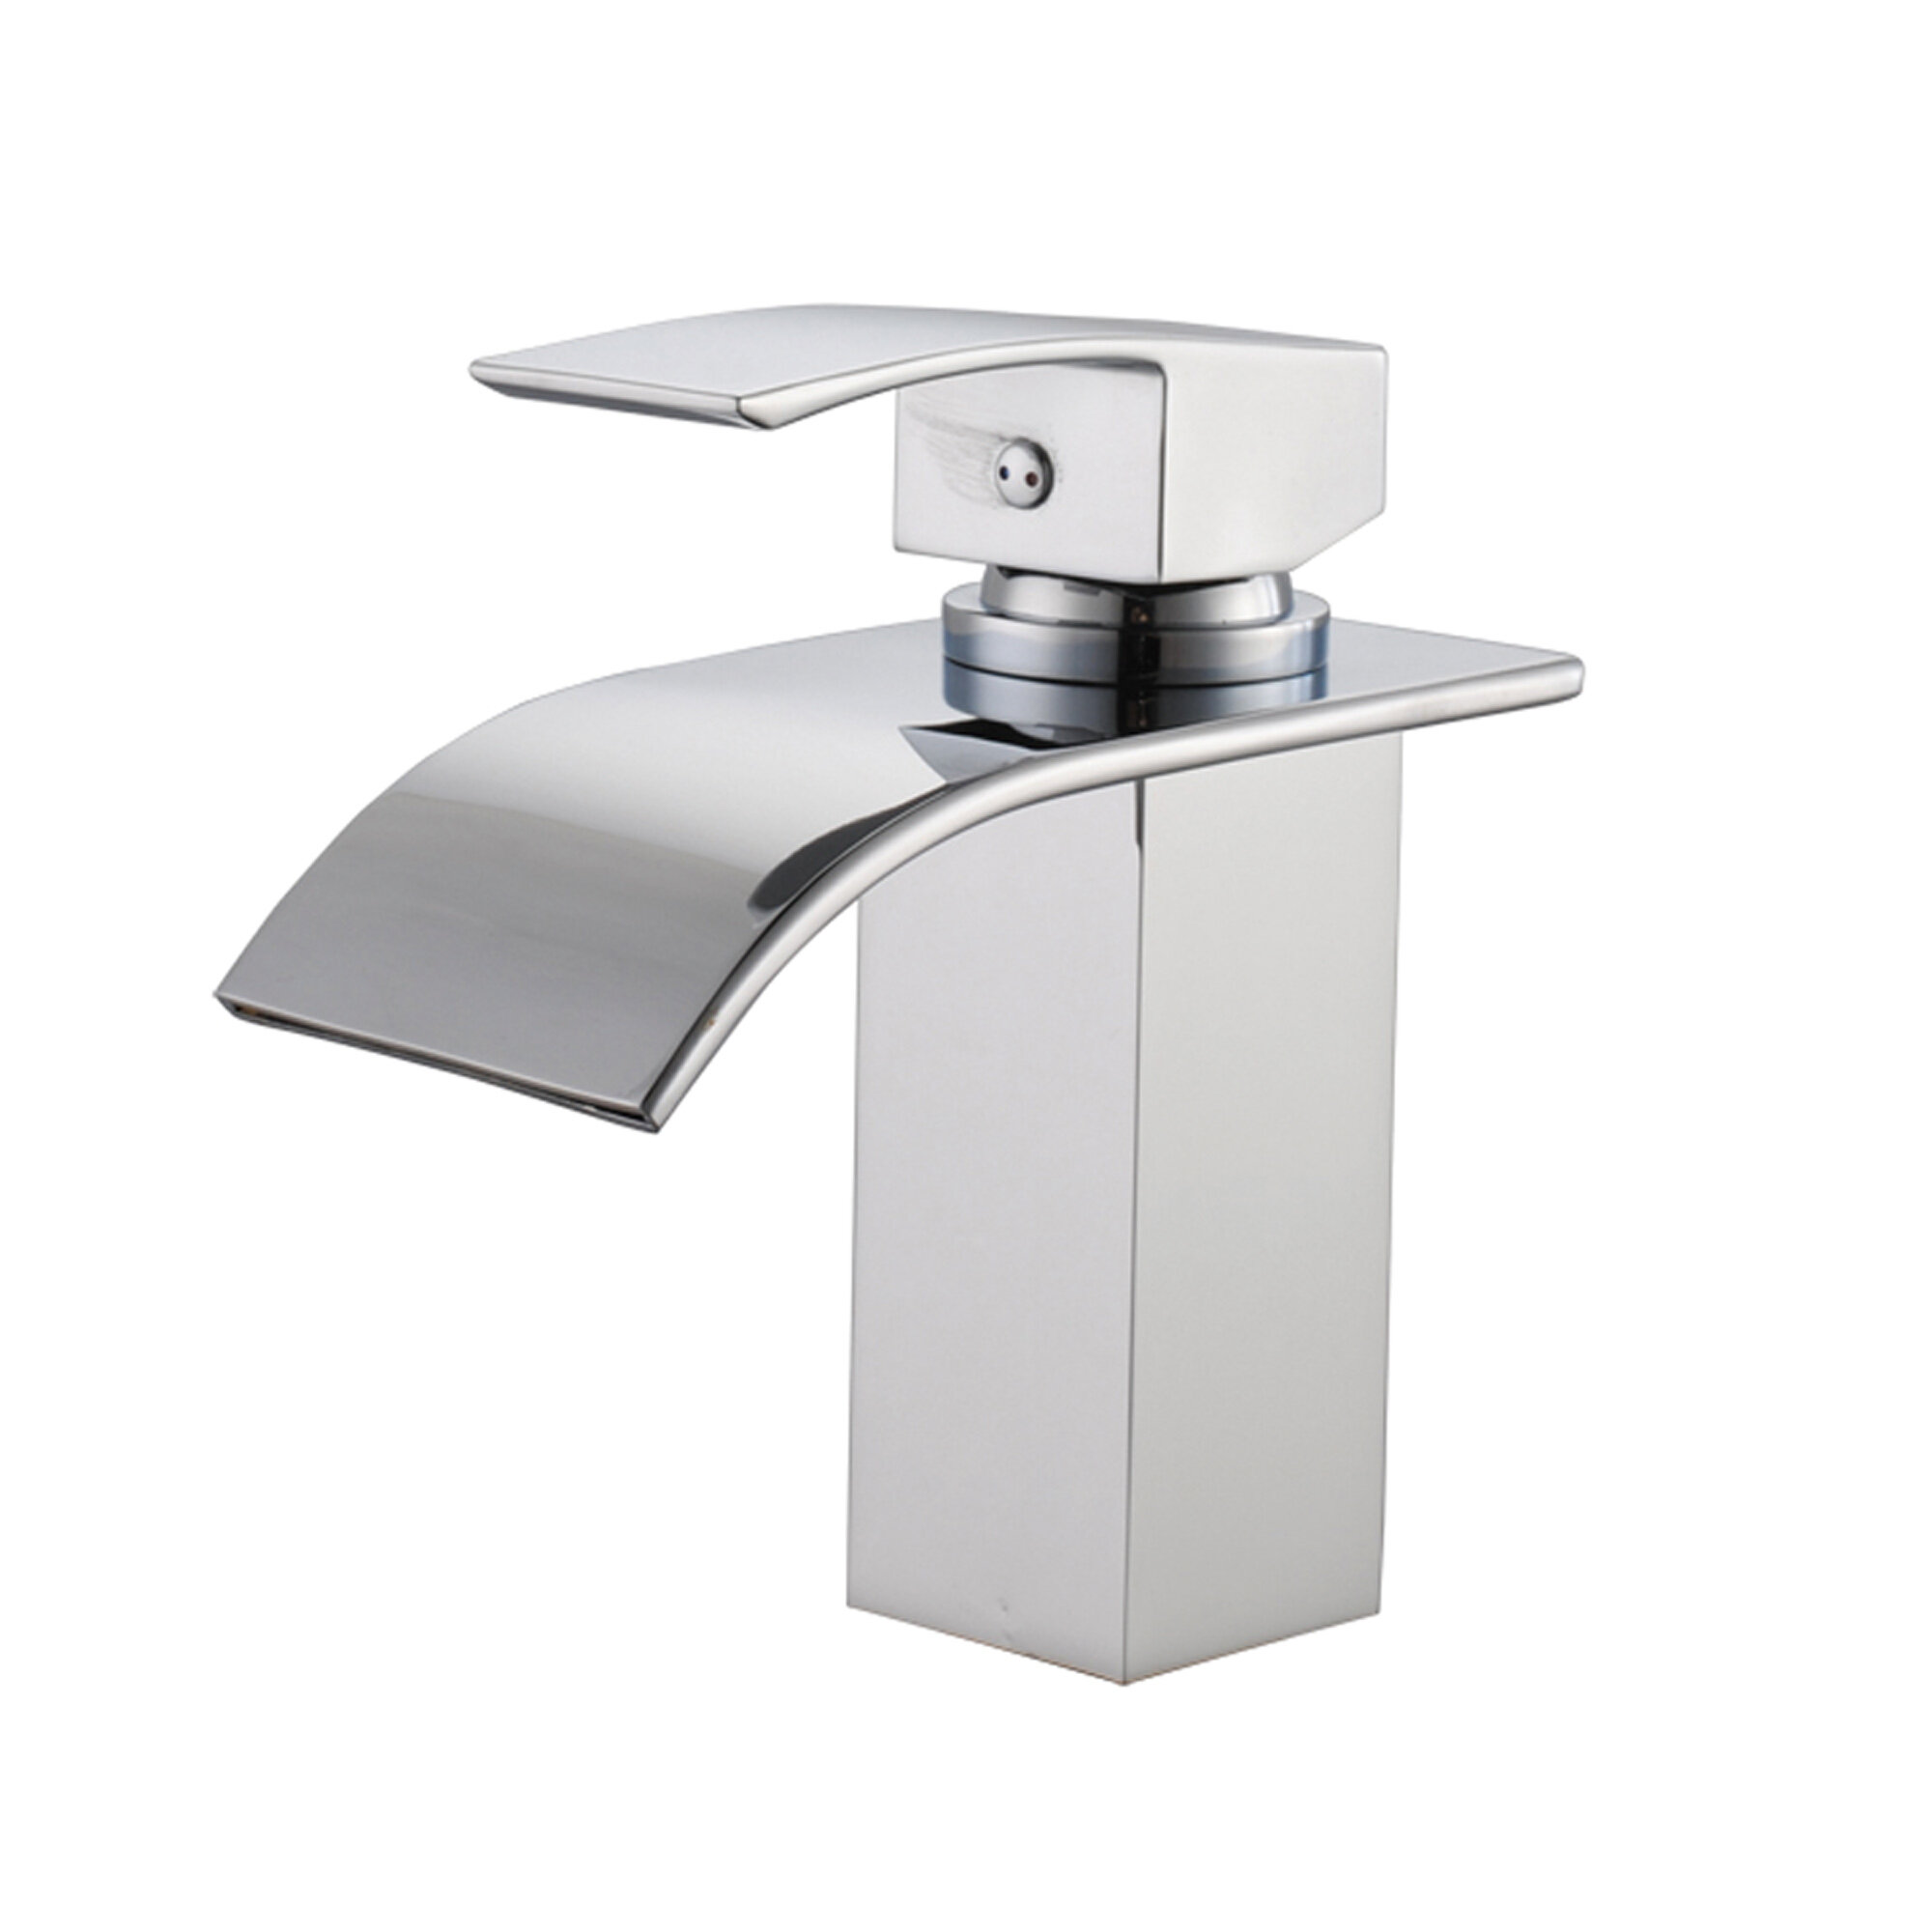 Deck Mount Waterfall Bathroom Sink Faucet with Hoses